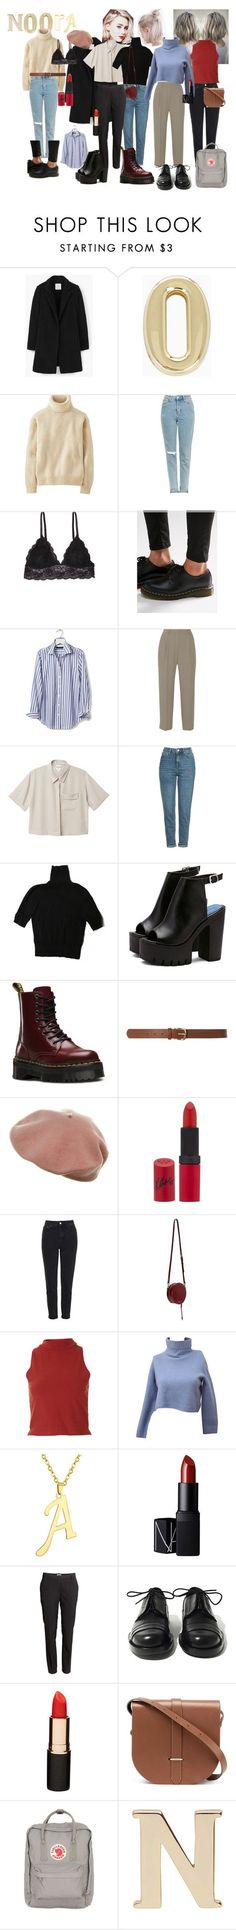 """""""Noora Sætre from Skam"""" by aimeecombe on Polyvore featuring MANGO, BCBGeneration, Uniqlo, Topshop, Humble Chic, Dr. Martens, Banana Republic, Vanessa Bruno, Monki and H&M"""